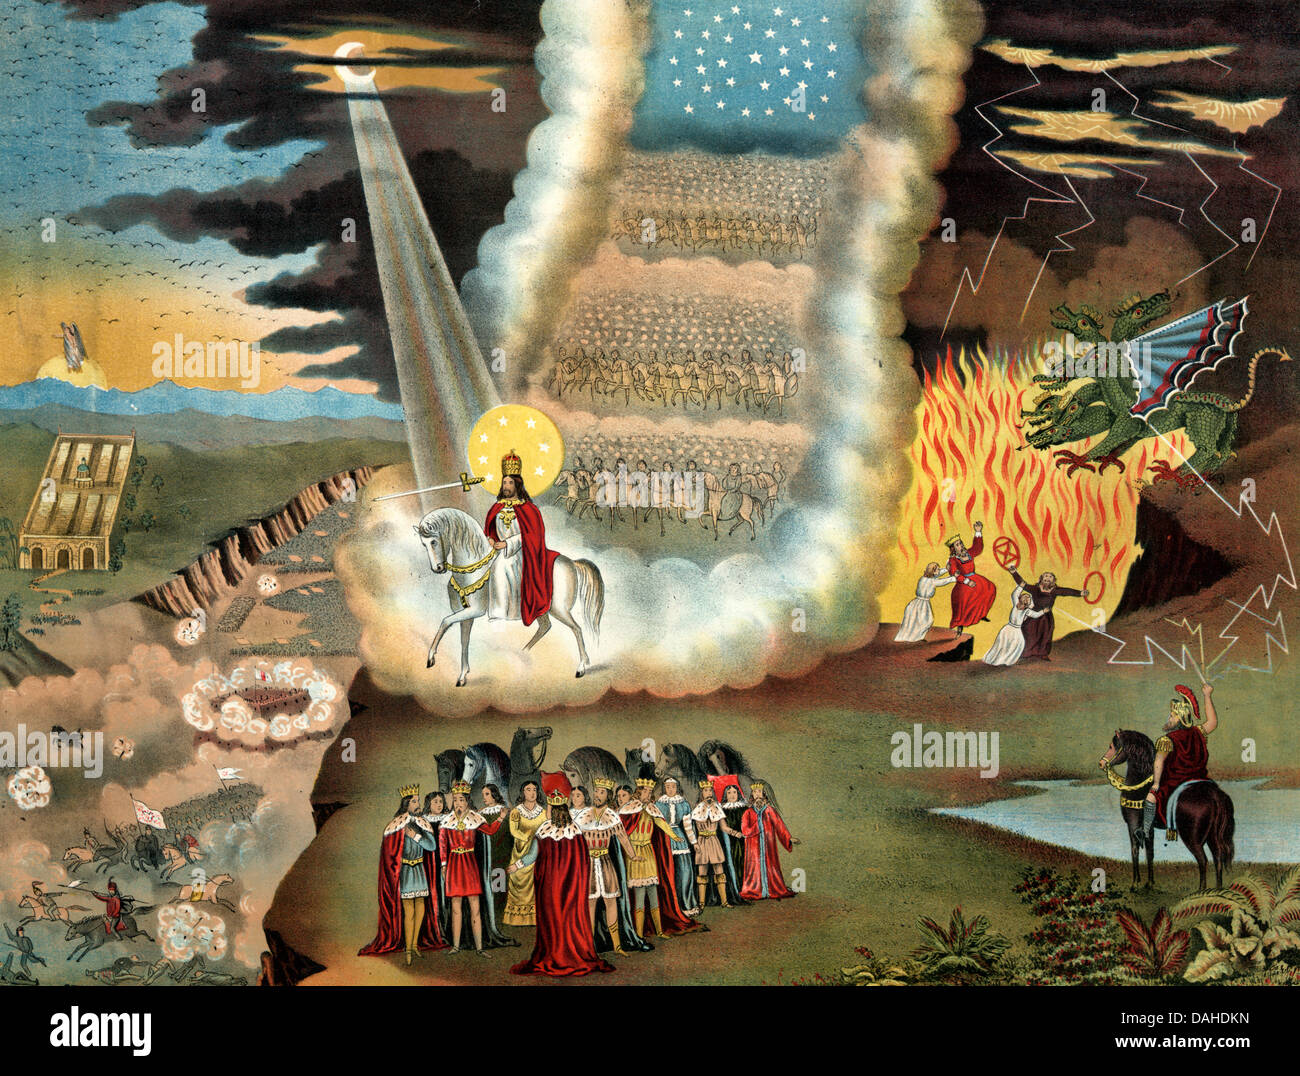 Messiah Jesus Christ On White Horse With Sword On Judgment Day